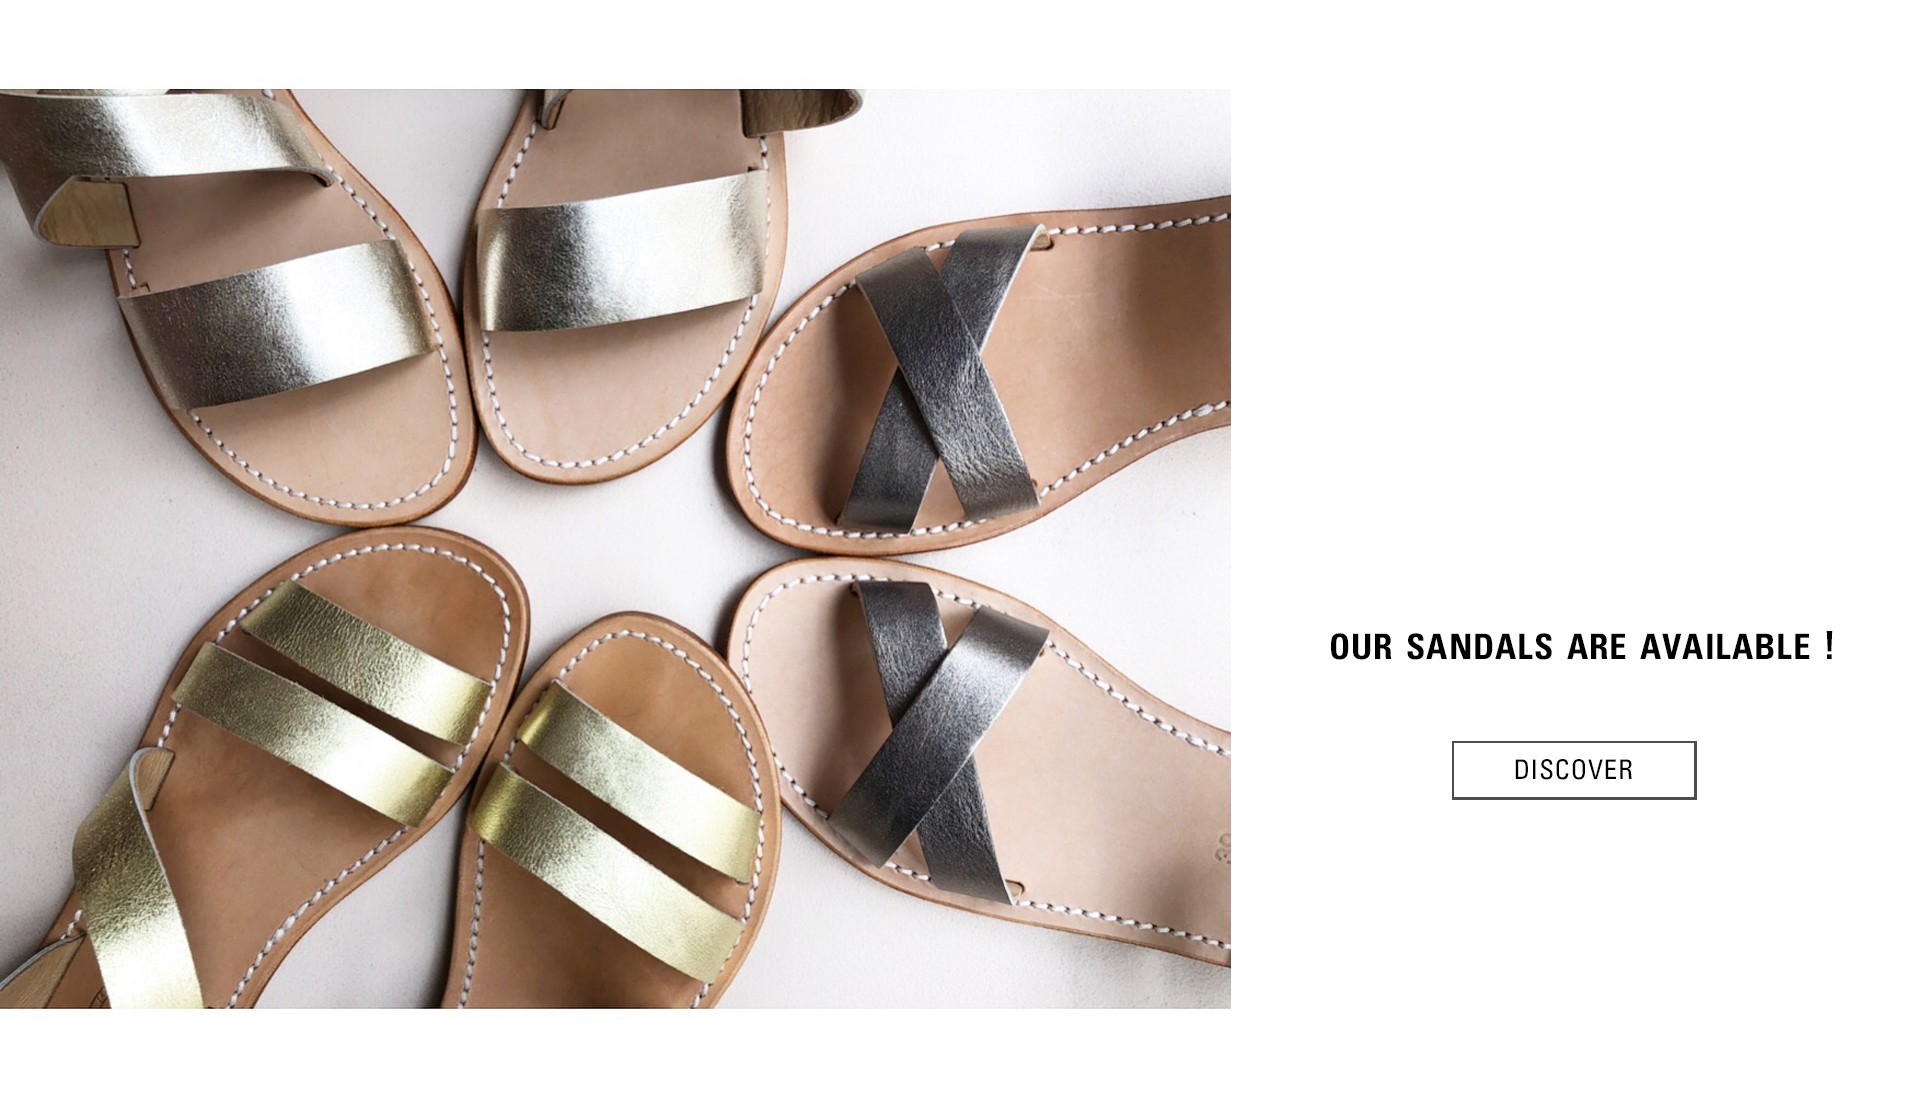 Our sandals are available !